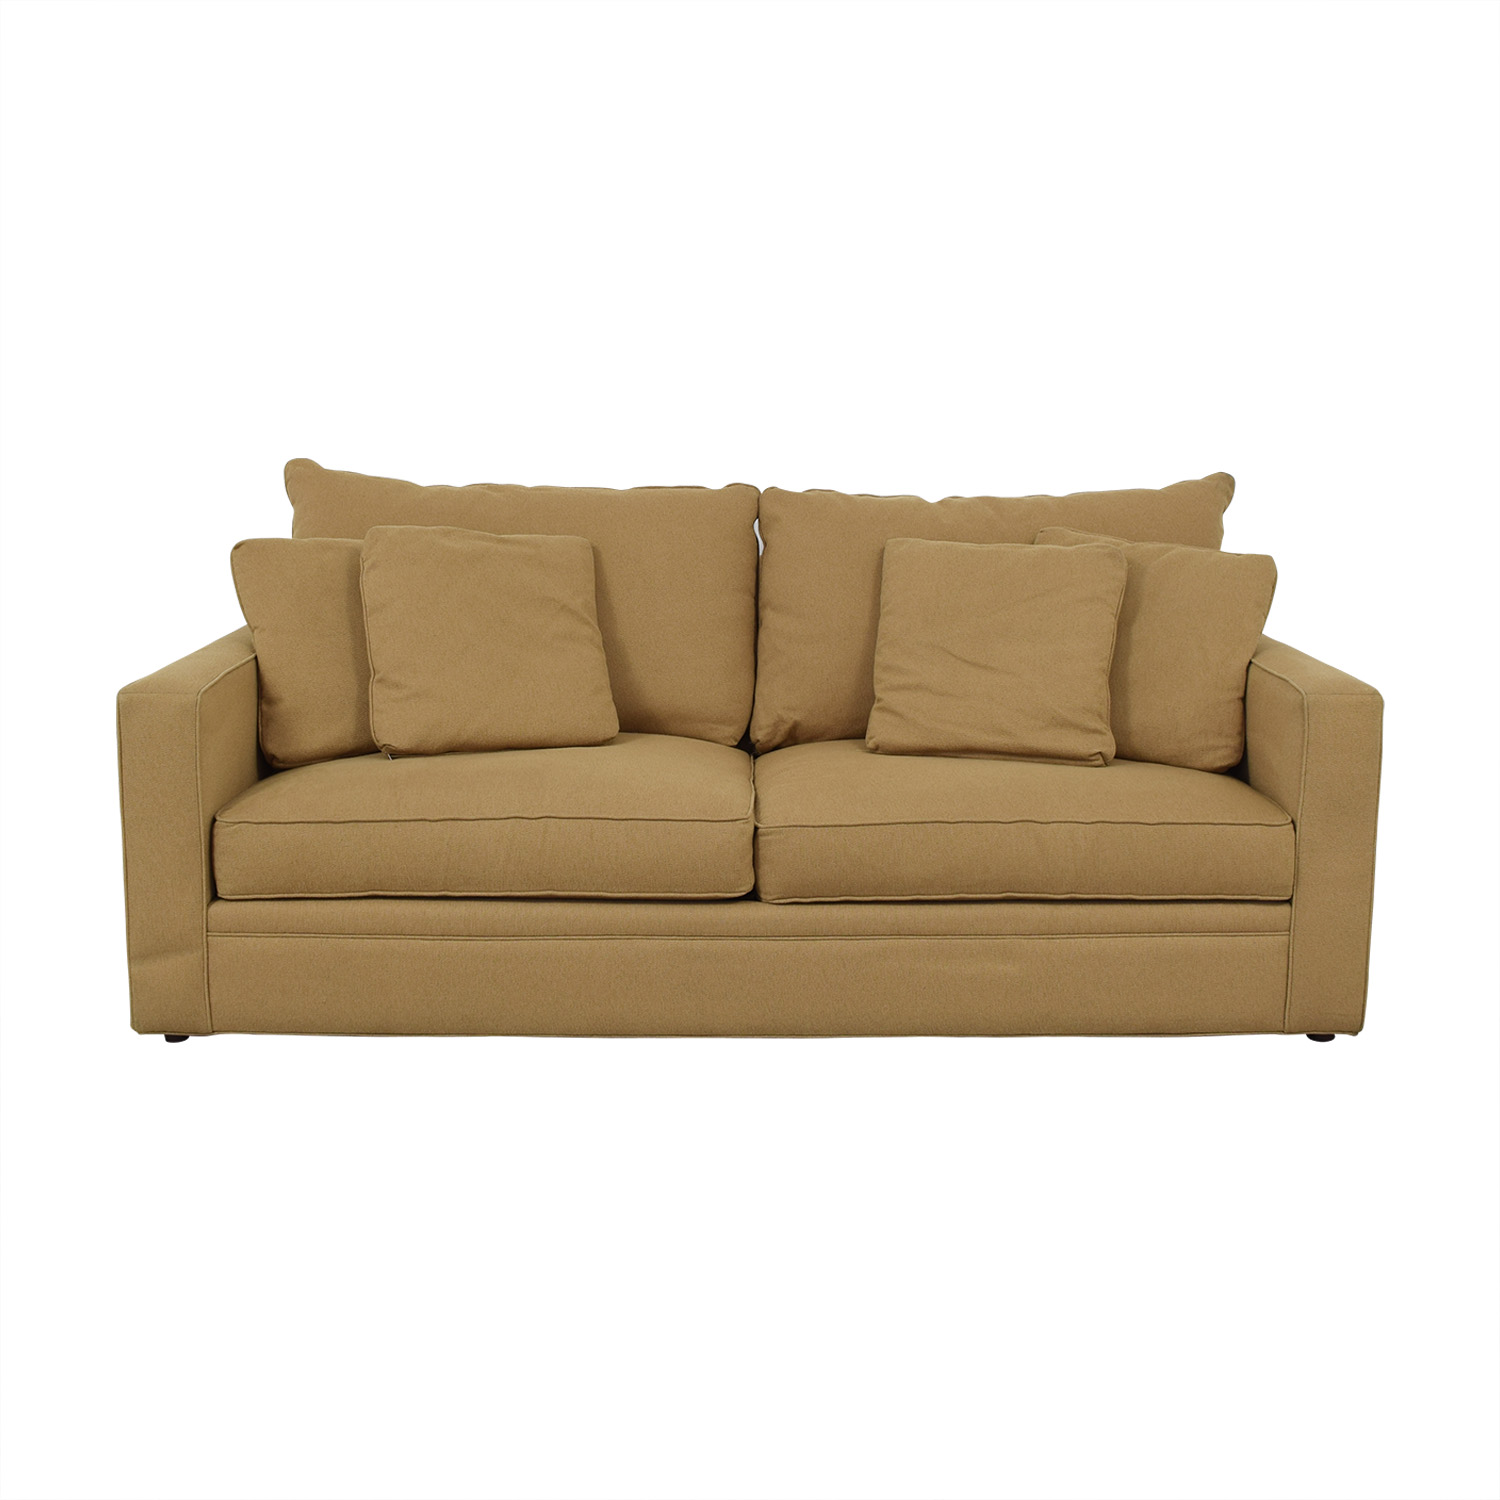 Room & Board Room & Board Orson Custom Sofa coupon